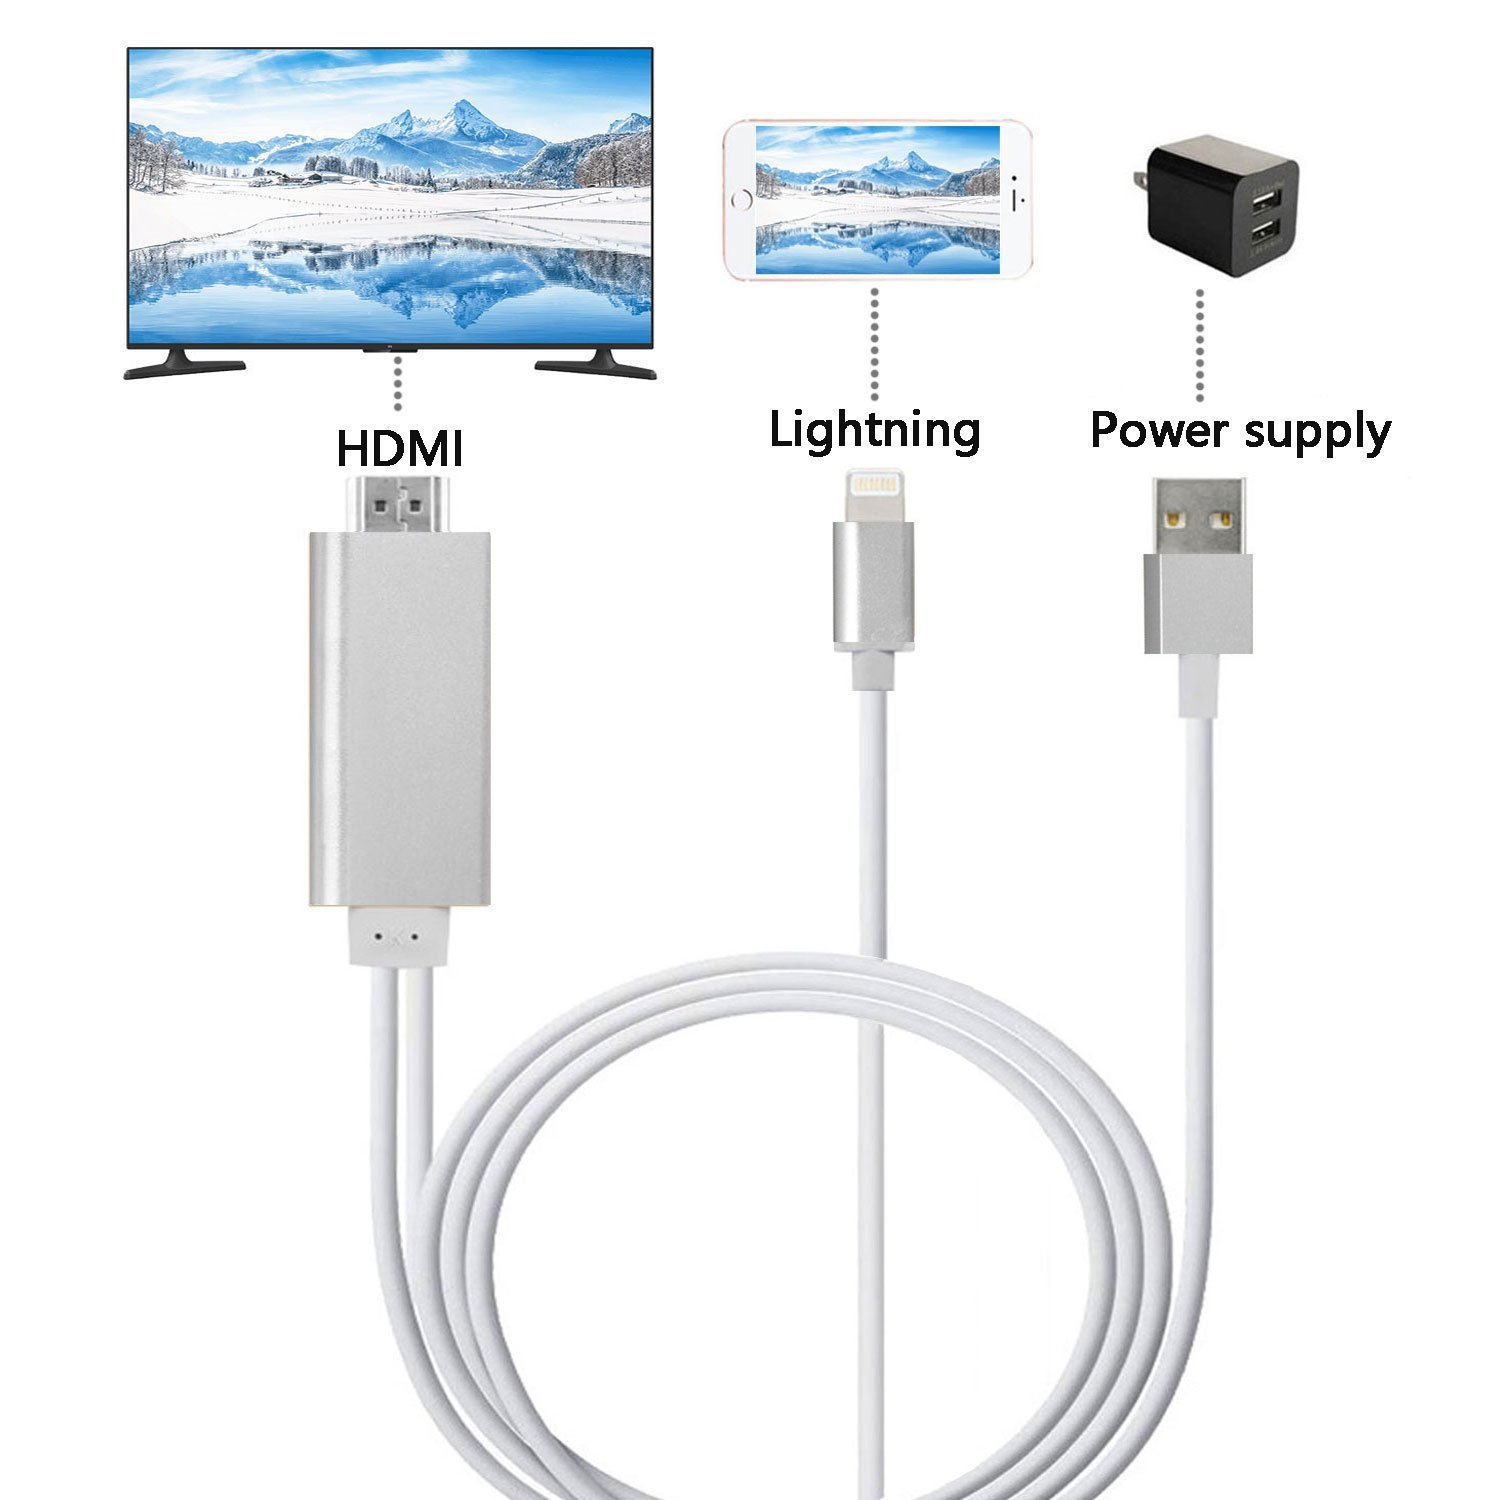 Lightning To Hdmi Cable Mirroring Iphone Ipad Screen Tv Digital Av Lcd Kabel X 8 7 6 5 3 4 Ipod Projector Monitor Adapter 1080p For Ios Devices Silver Walmart